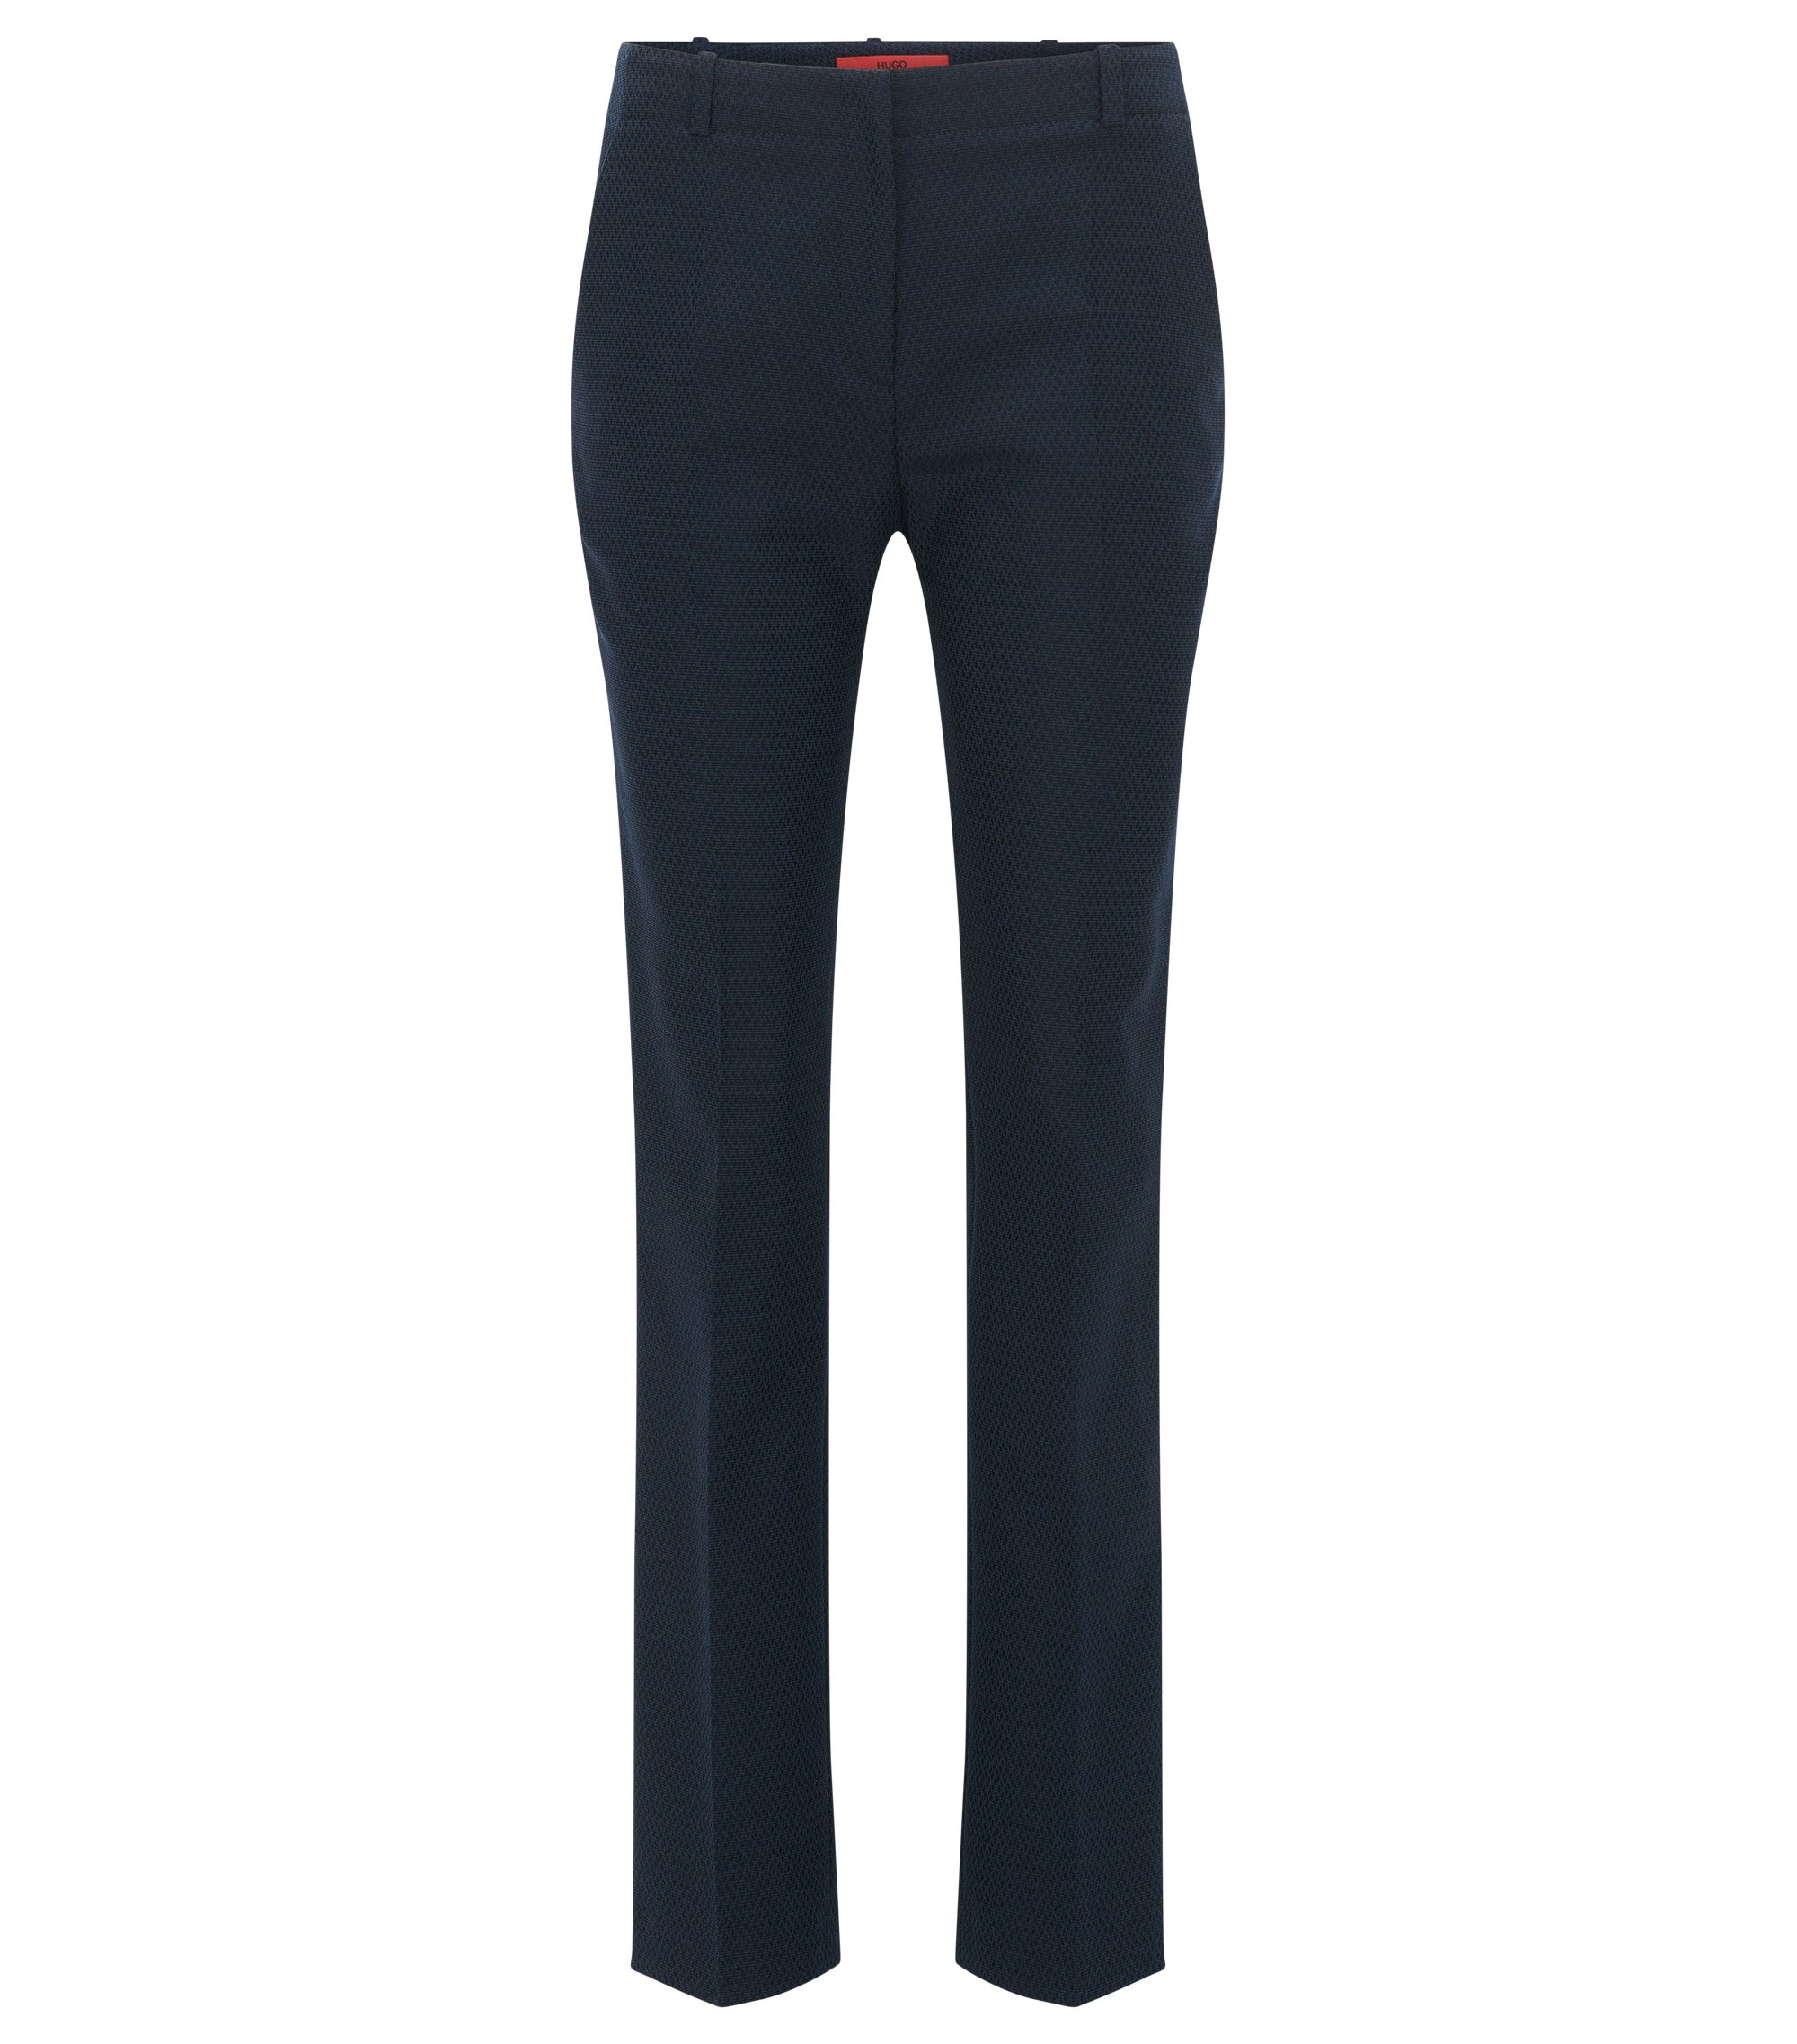 Pantaloni regular fit in misto cotone con lana, Blu scuro